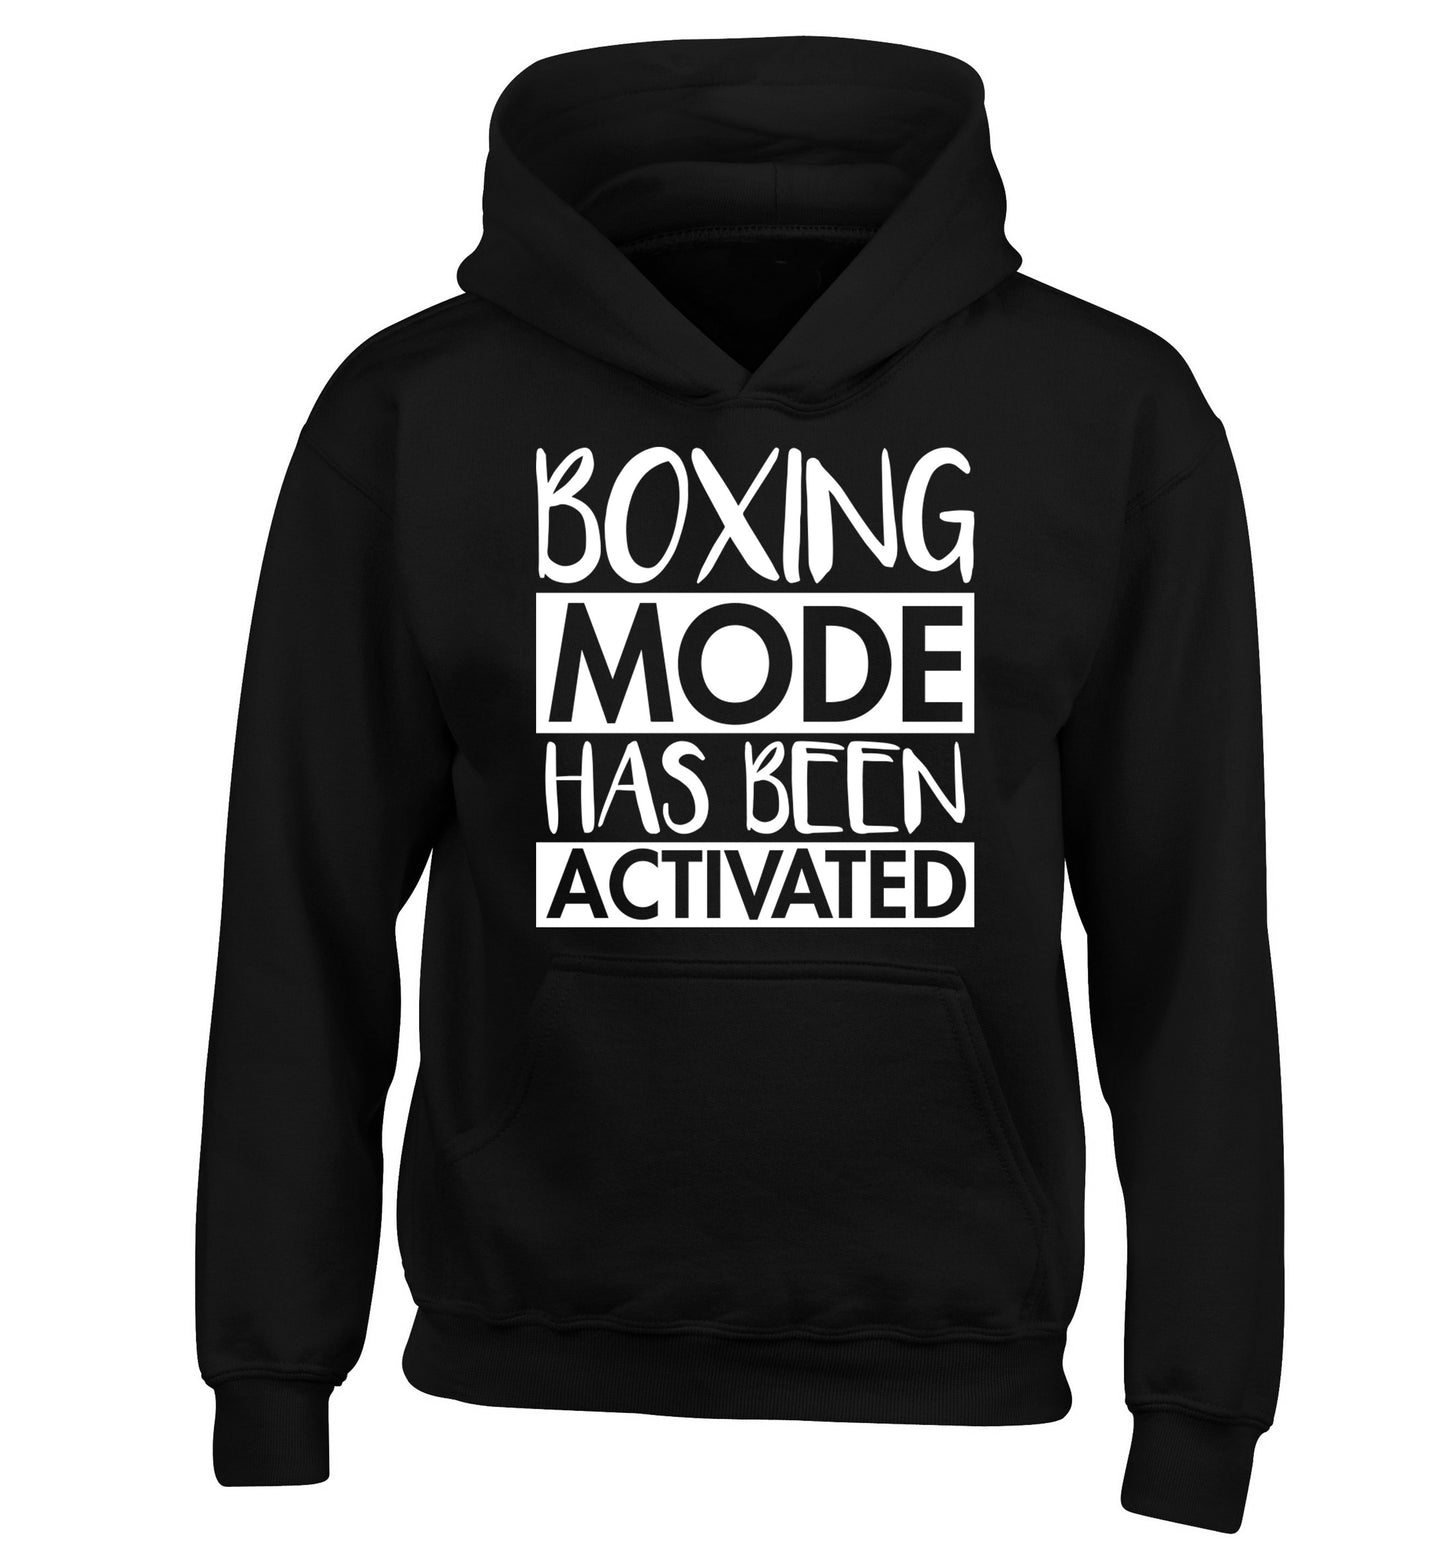 Boxing mode activated children's black hoodie 12-14 Years